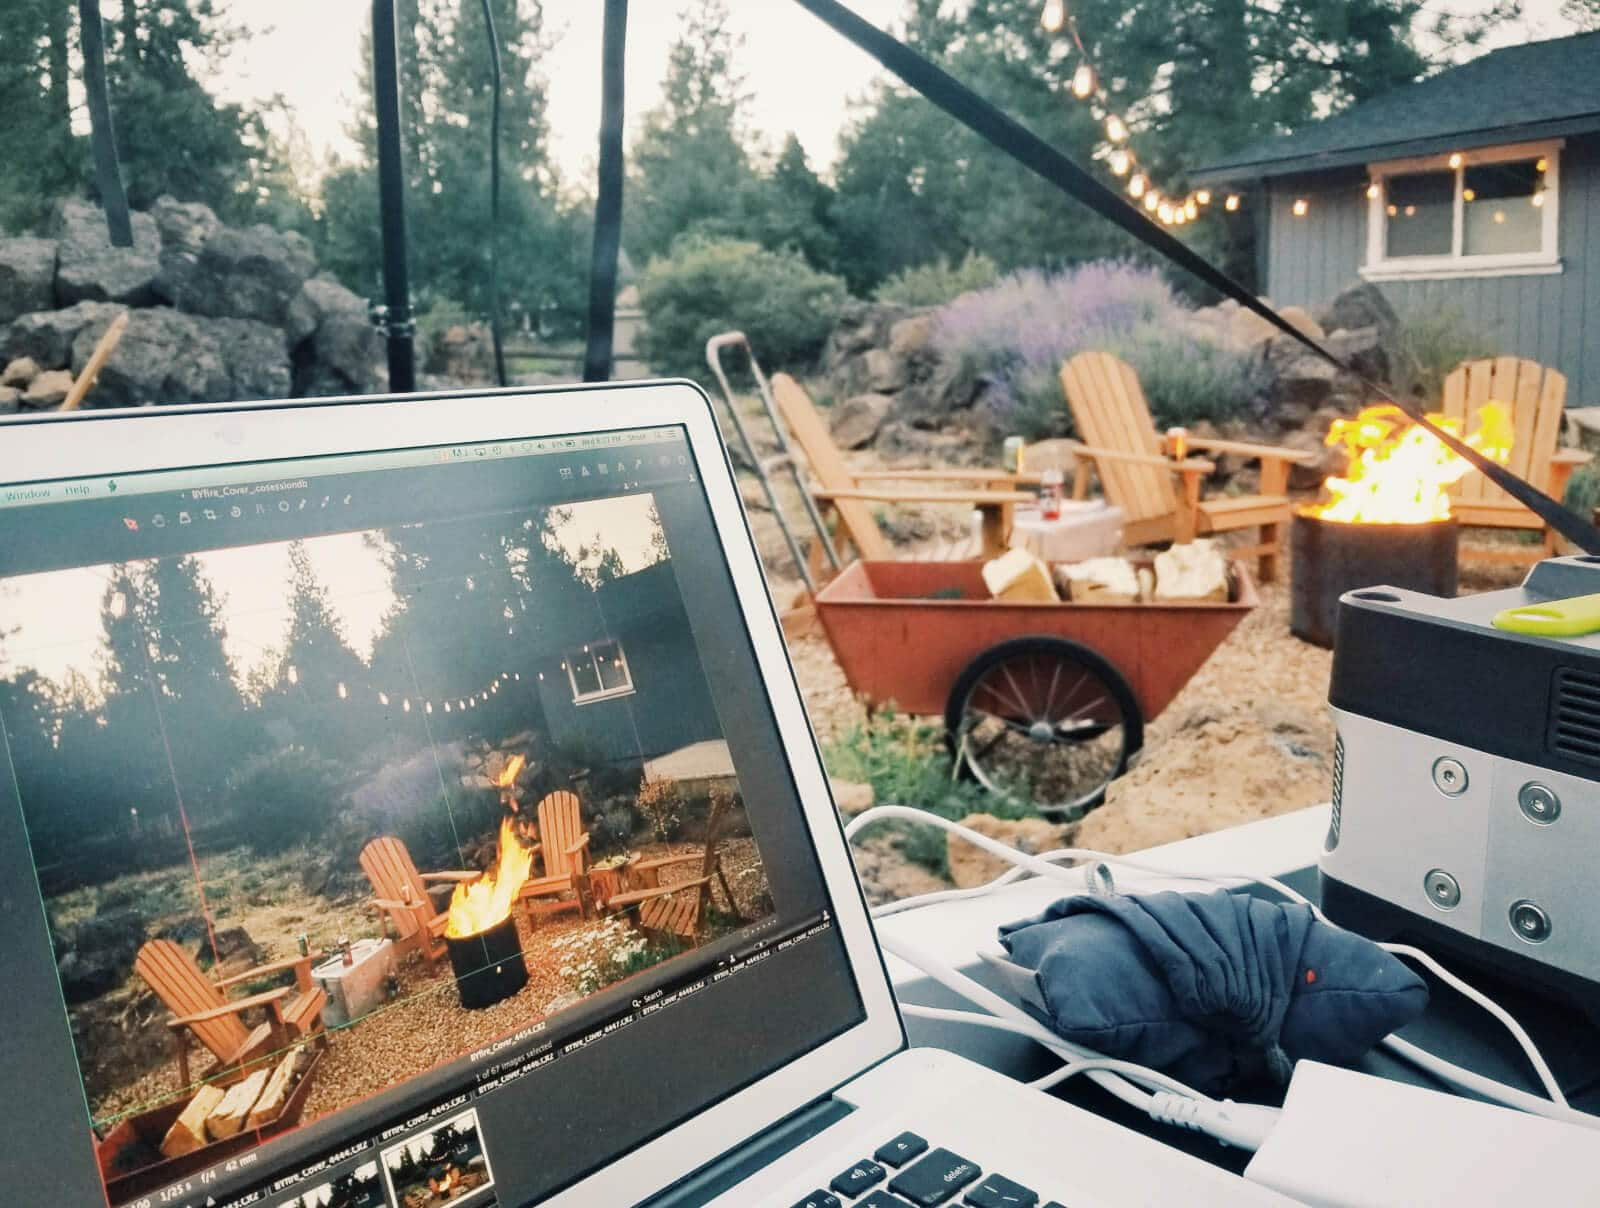 Behind the scenes of The Backyard Fire Cookbook cover shoot